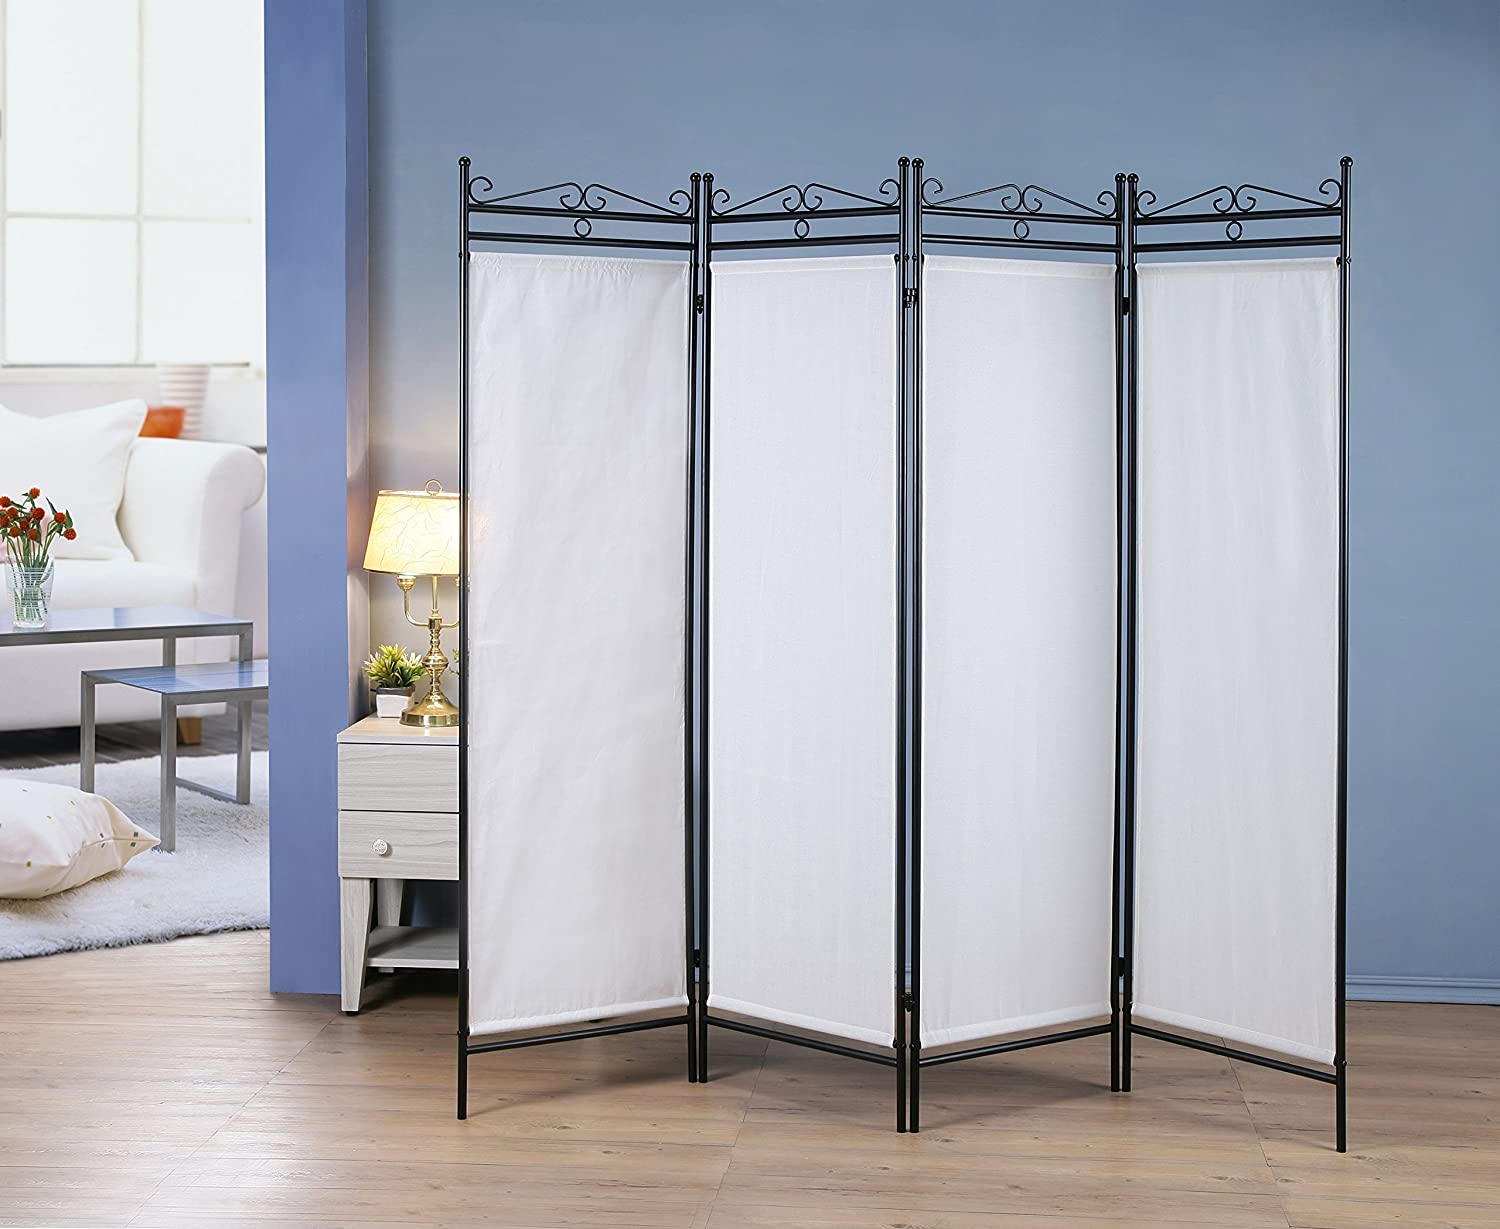 Amazon.com: 4 Panel Room Divider Privacy Screen Home Office Fabric Black  Metal Frame - Scroll Design: Kitchen & Dining - Amazon.com: 4 Panel Room Divider Privacy Screen Home Office Fabric